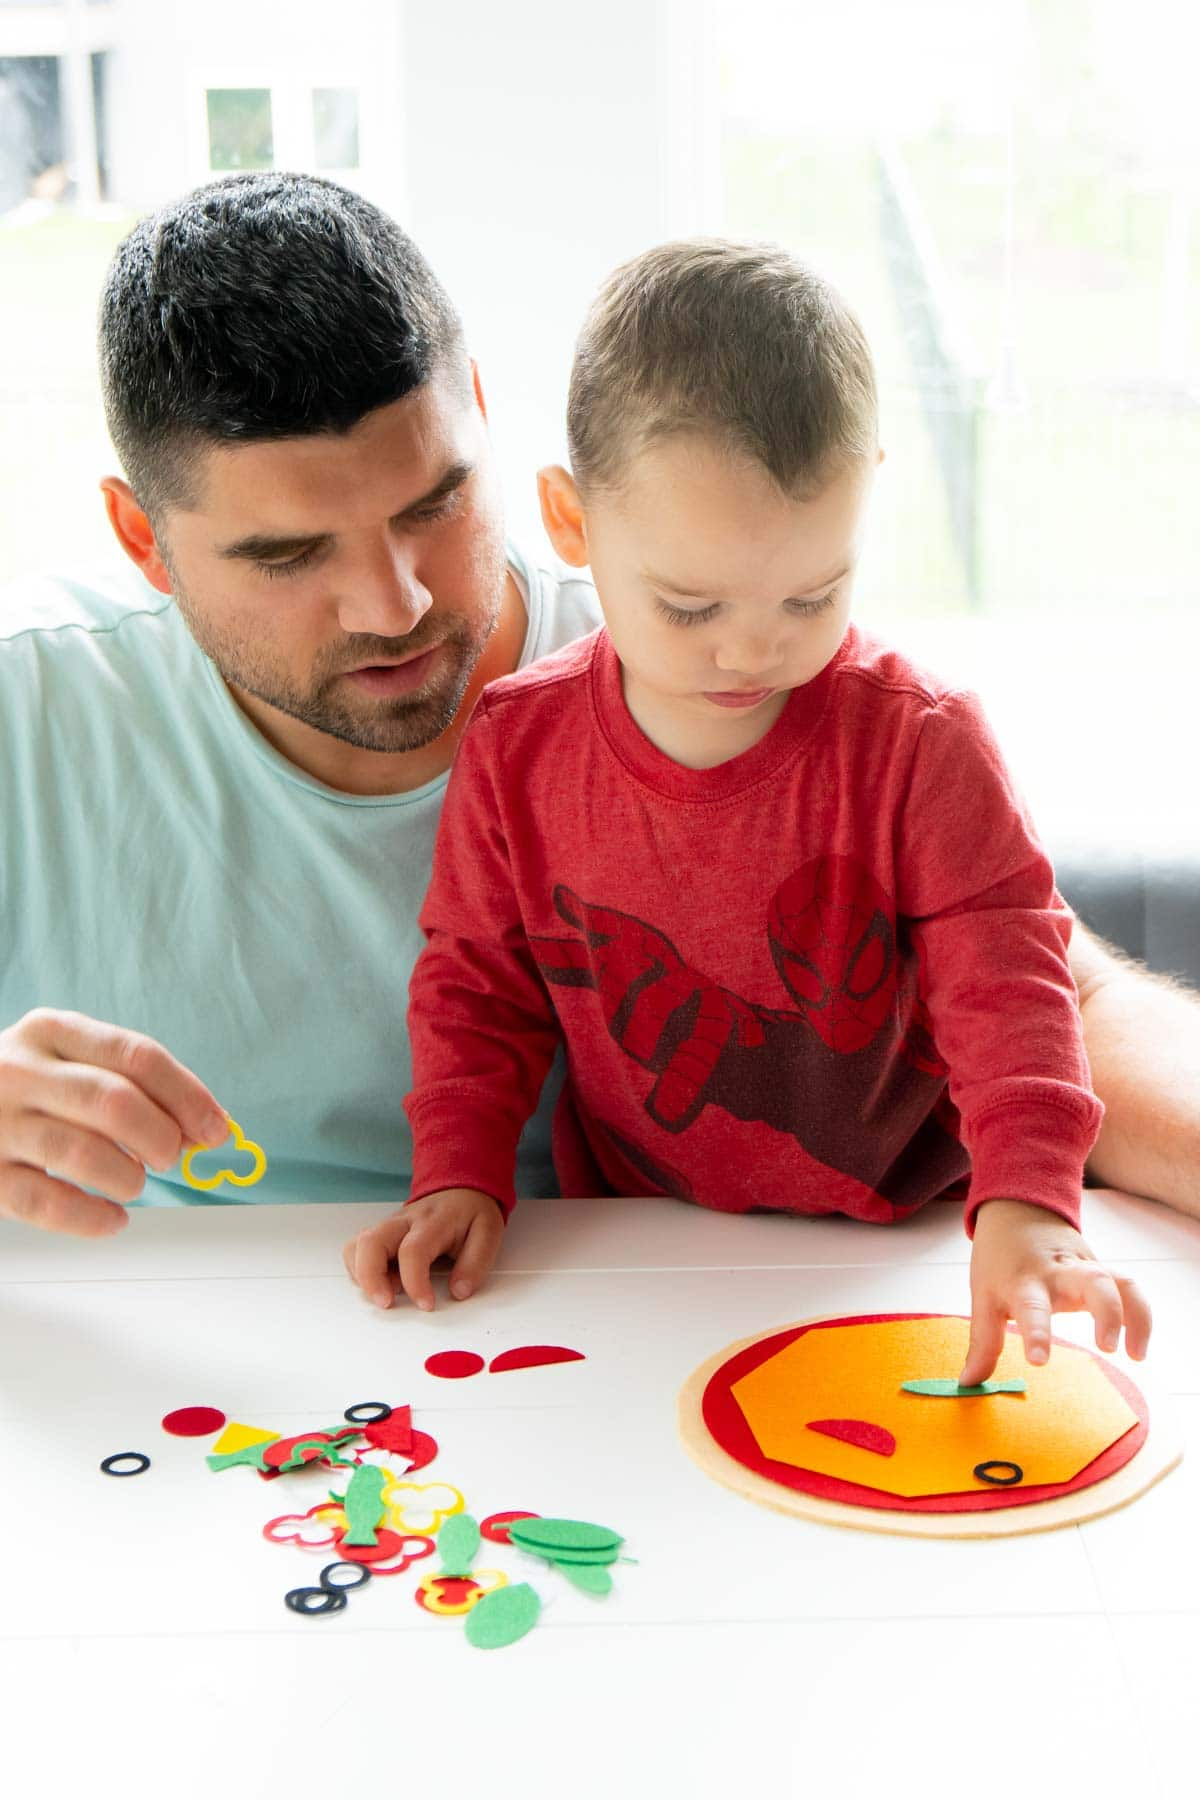 toddler playing with felt pizza set